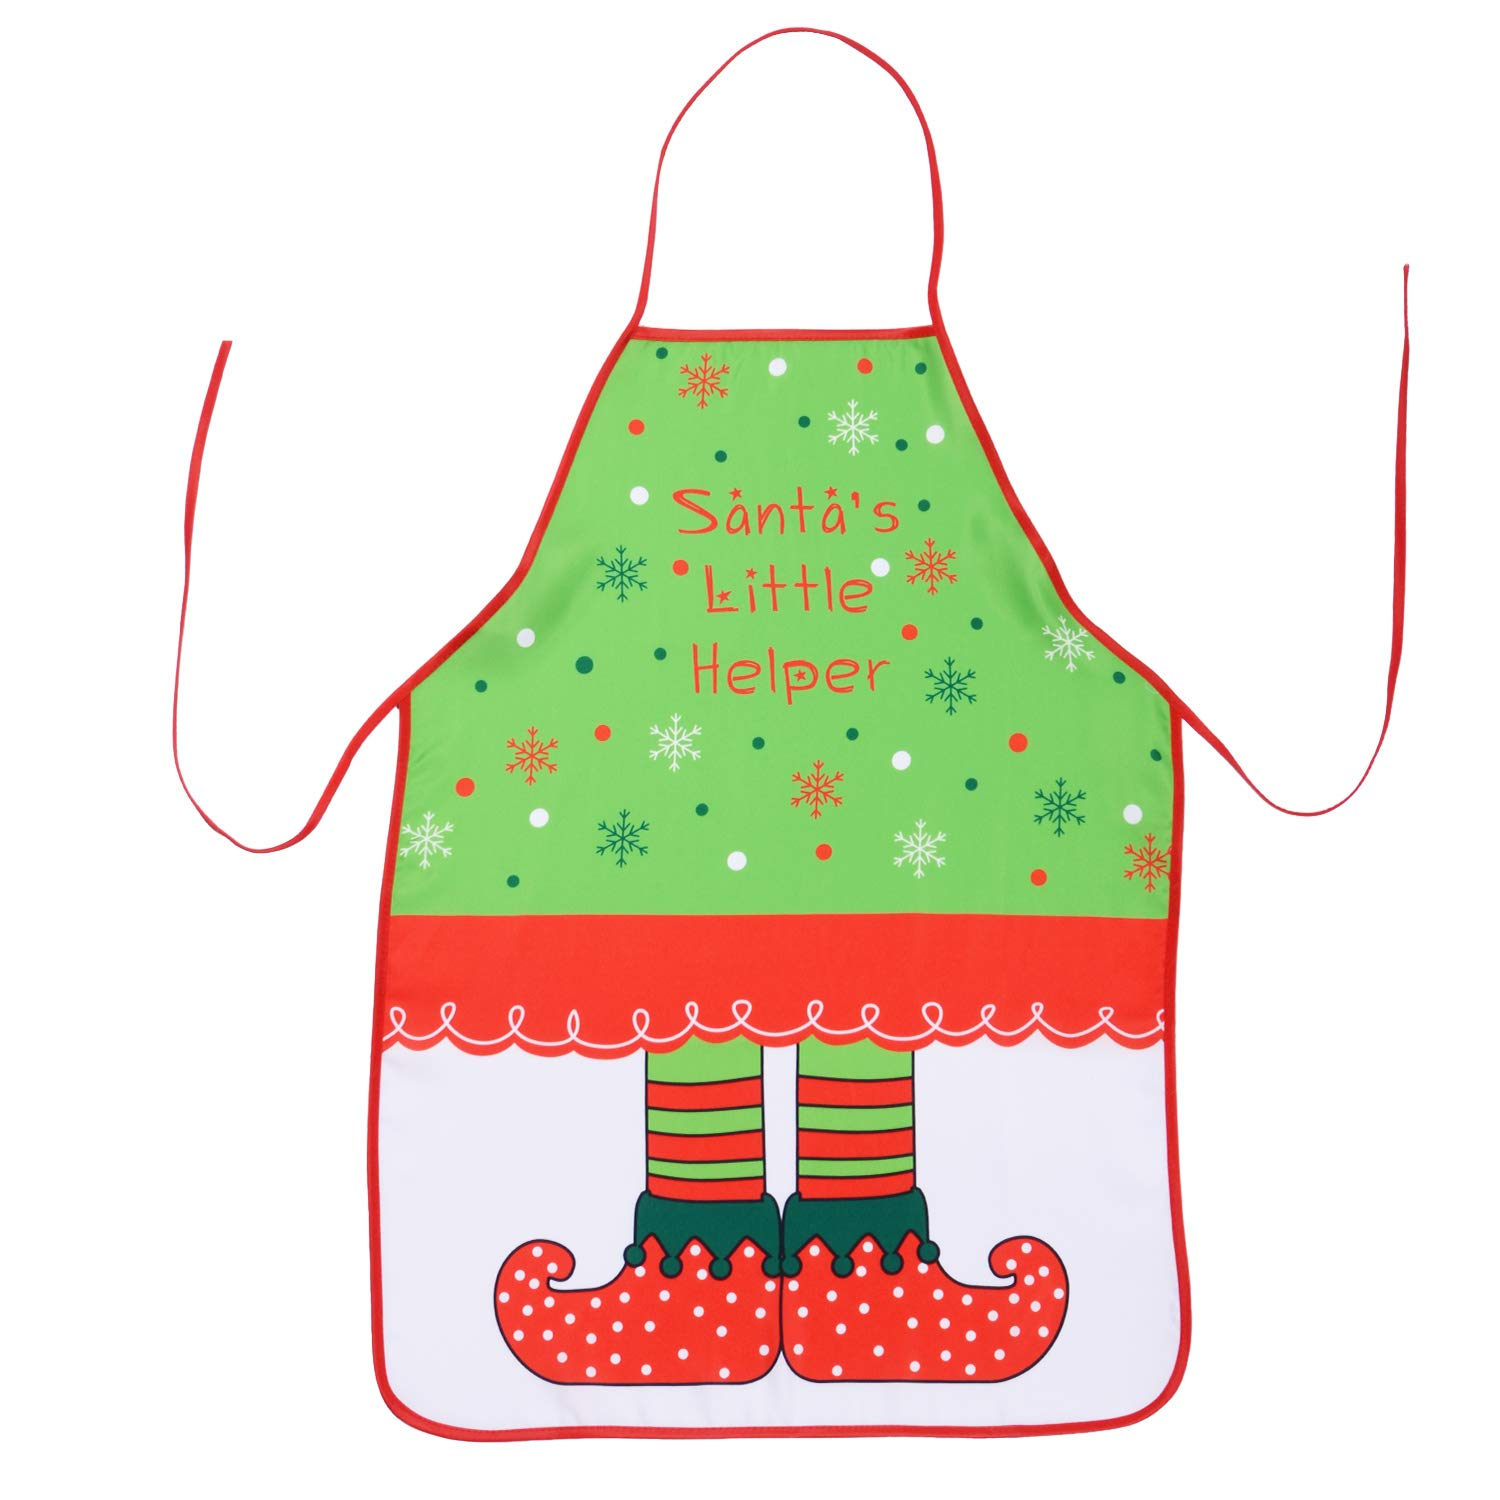 Christmas Humor Clip Art.Tingor Christmas Funny Flirty Apron Cute Adjustable Kitchen Chef Bib Bbq Cooking Aprons For Adult Holiday Kitchen Apron Funny Creative Thanksgiving